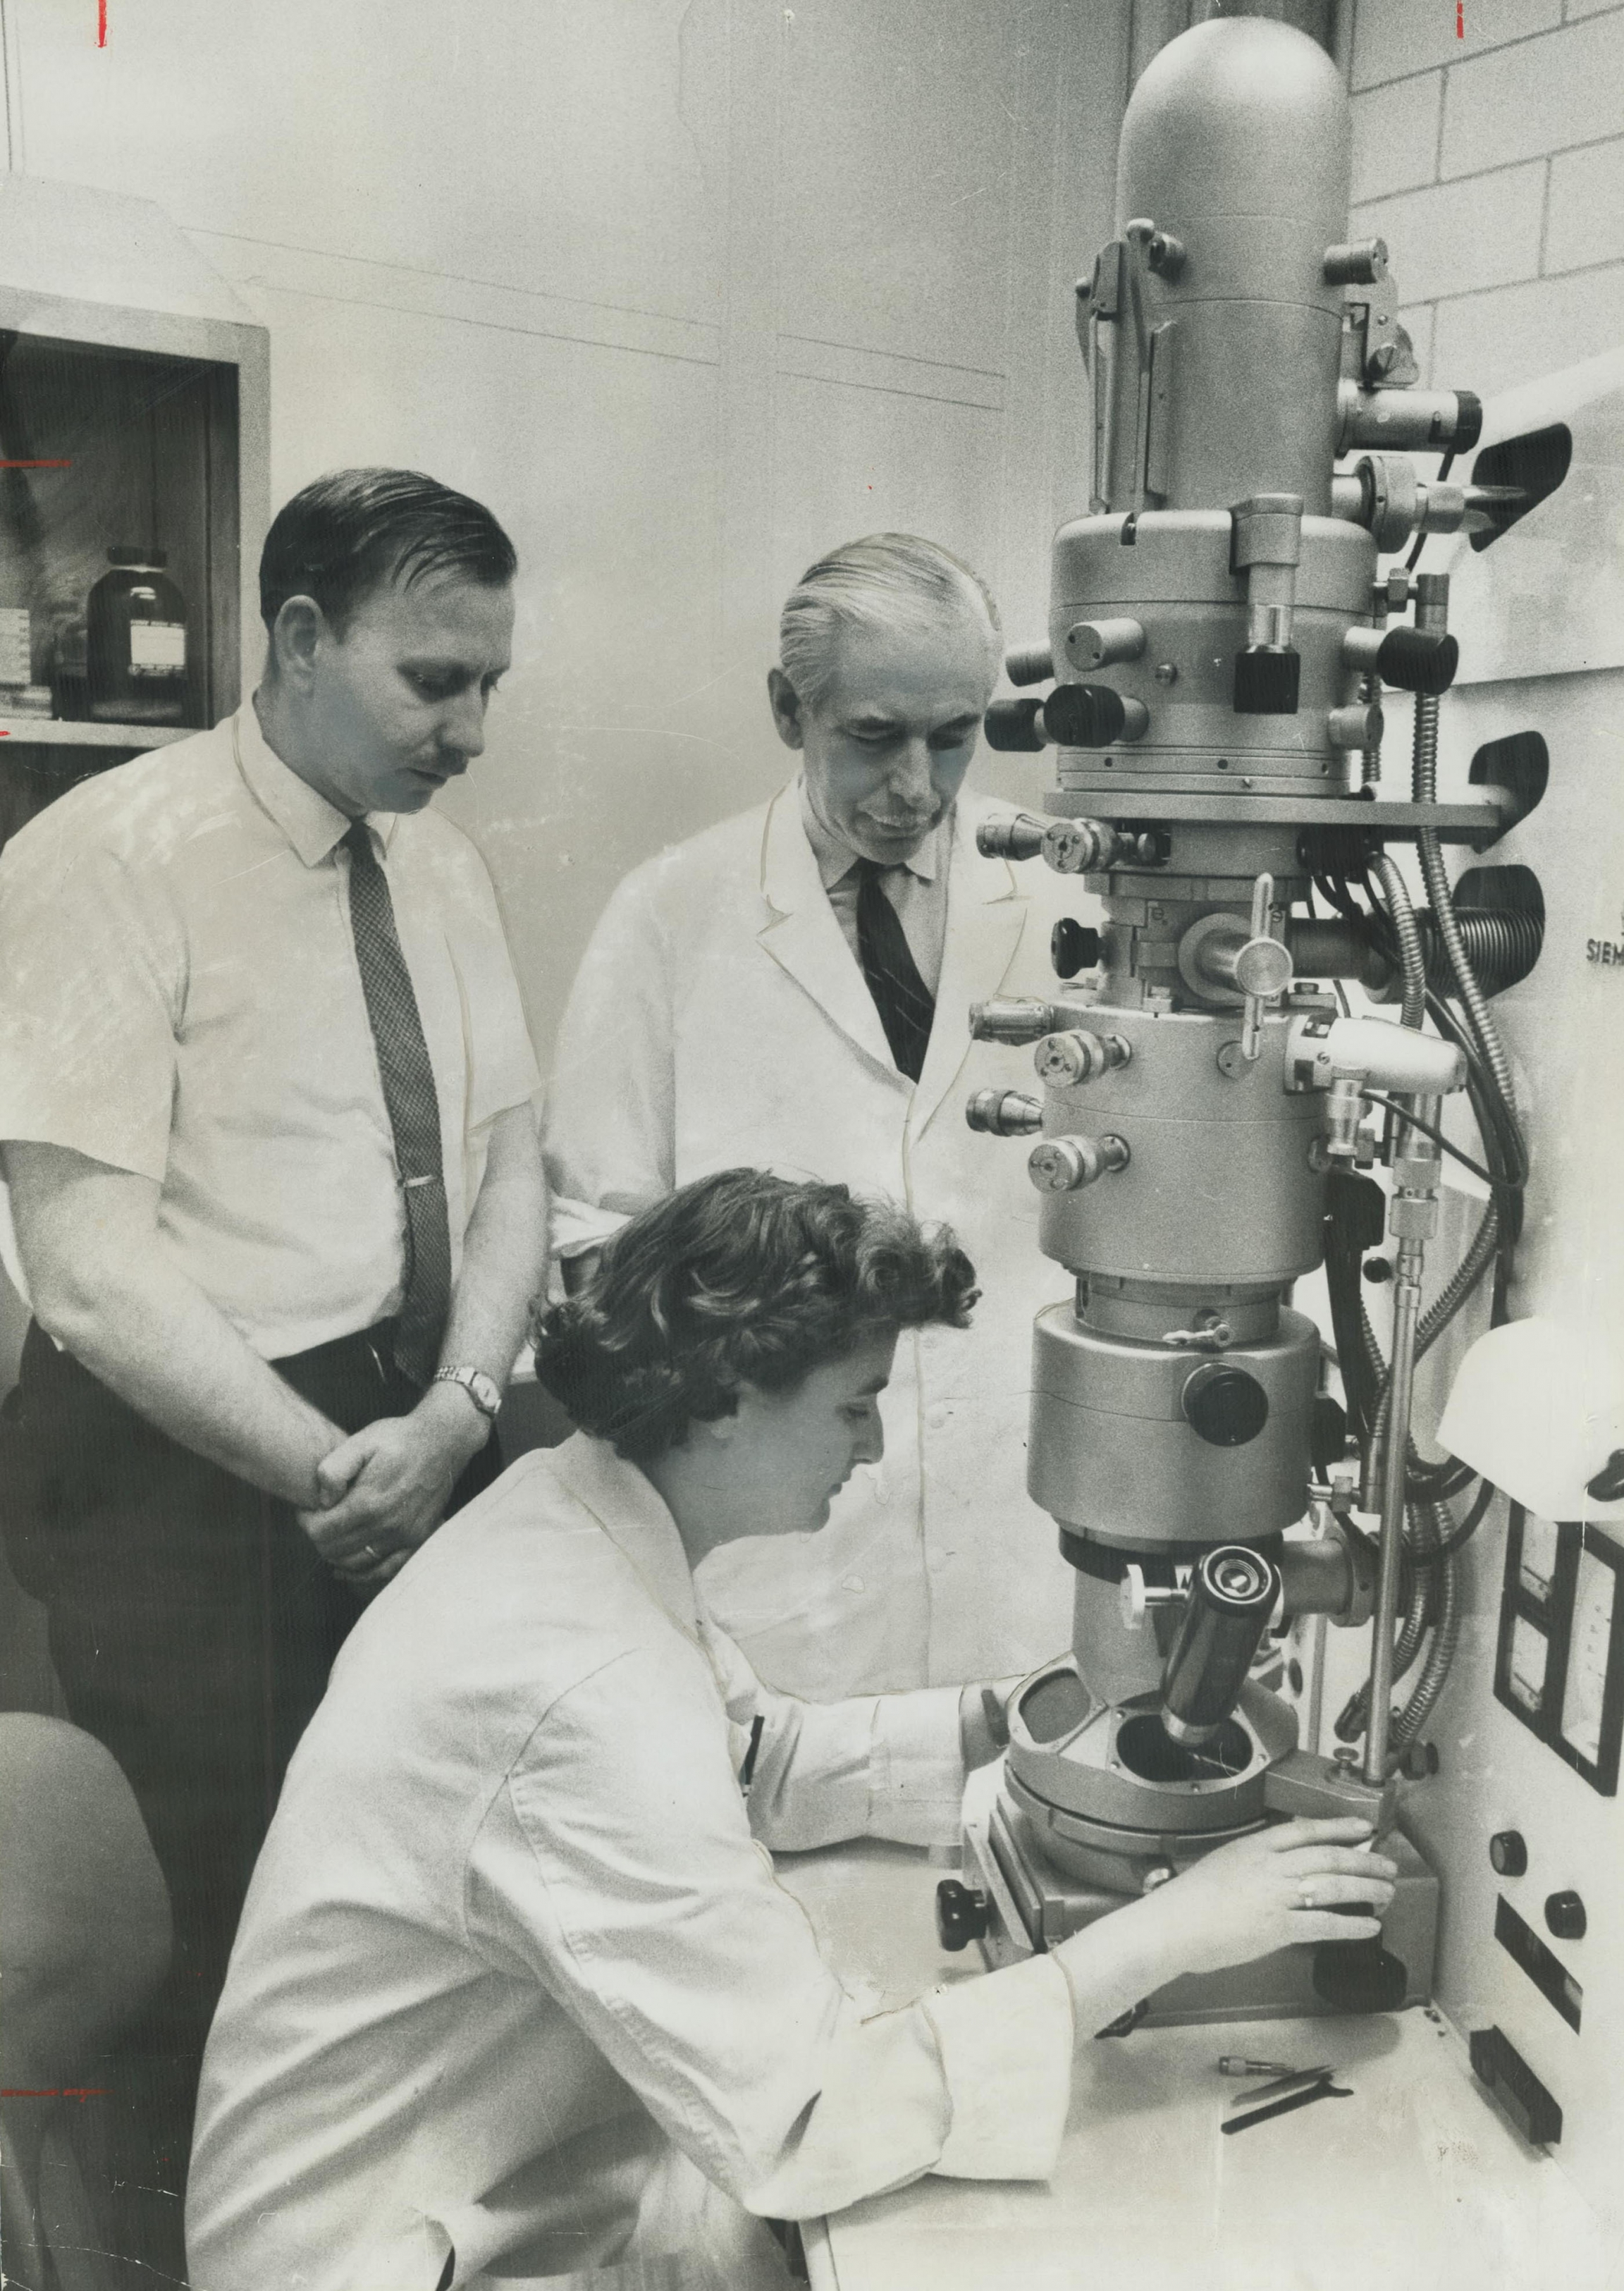 June Almeida, Scotish virologist looks into an electron microscope.